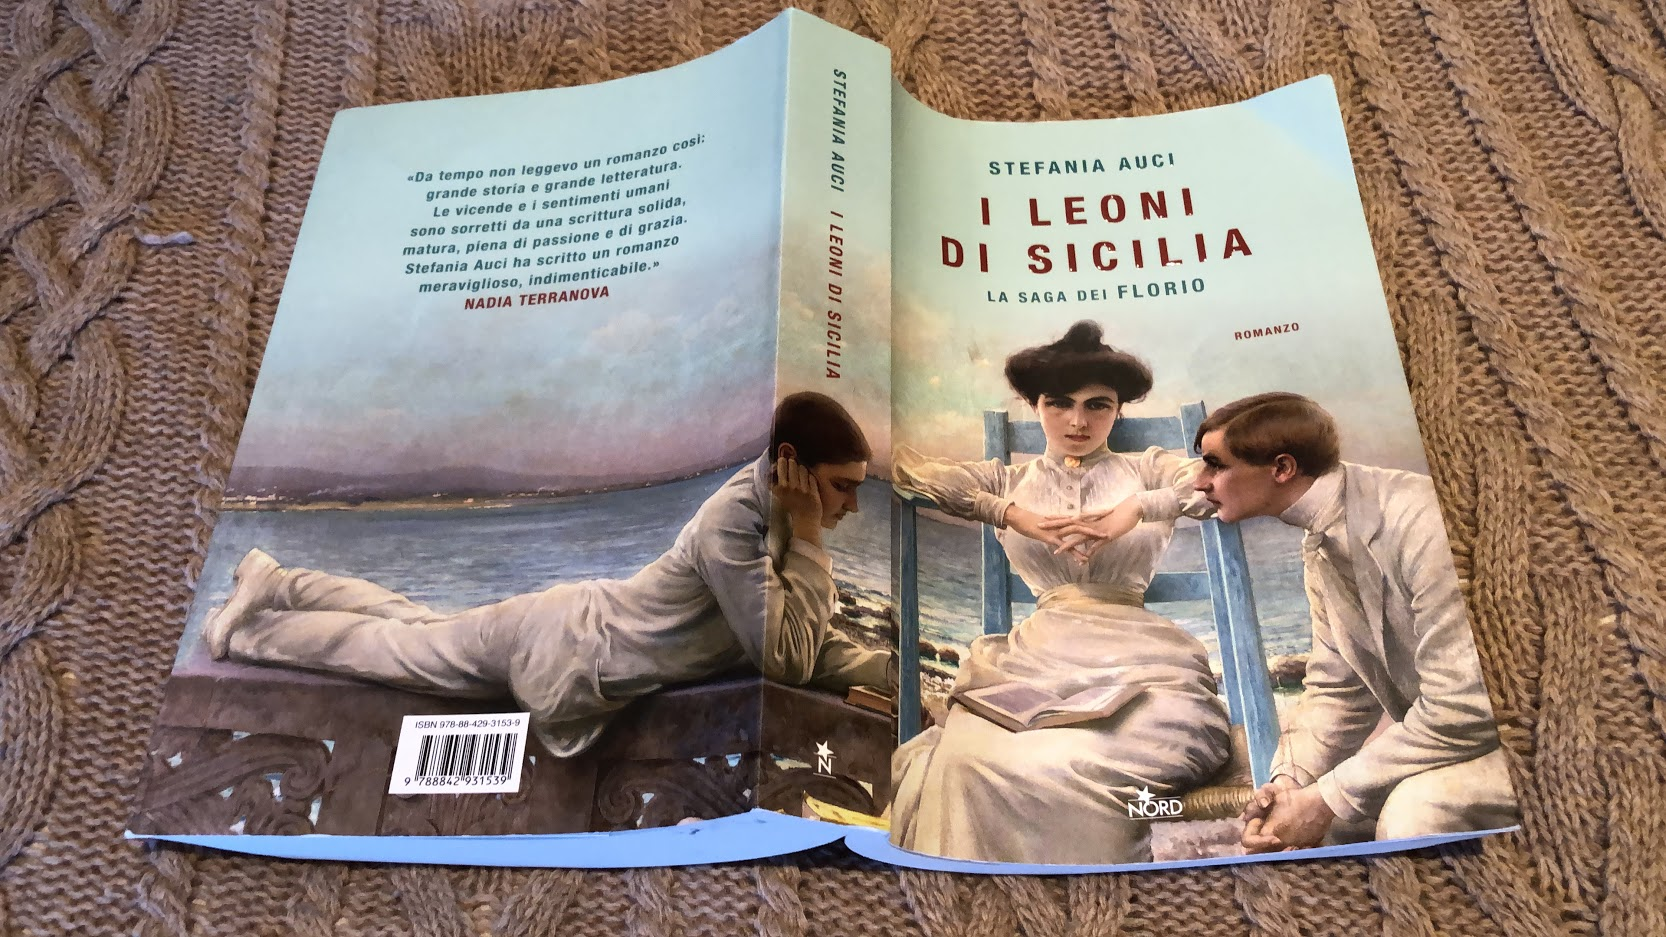 Book cover I Leoni di Sicilia - novel by Stefania Auci